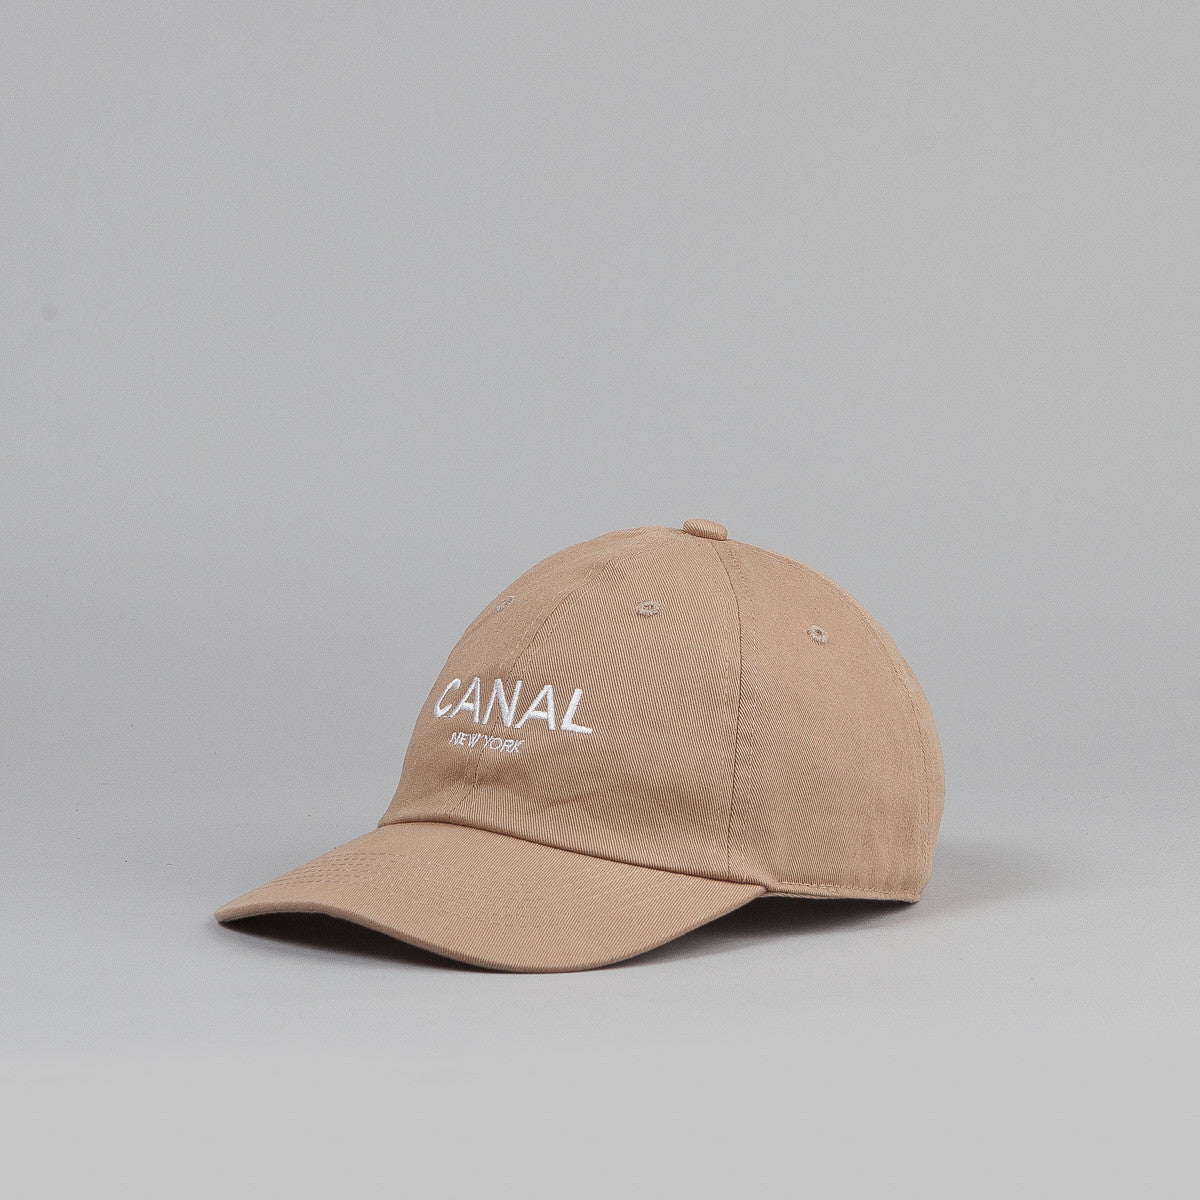 Canal New York Adult Headwear 6 Panel Cap